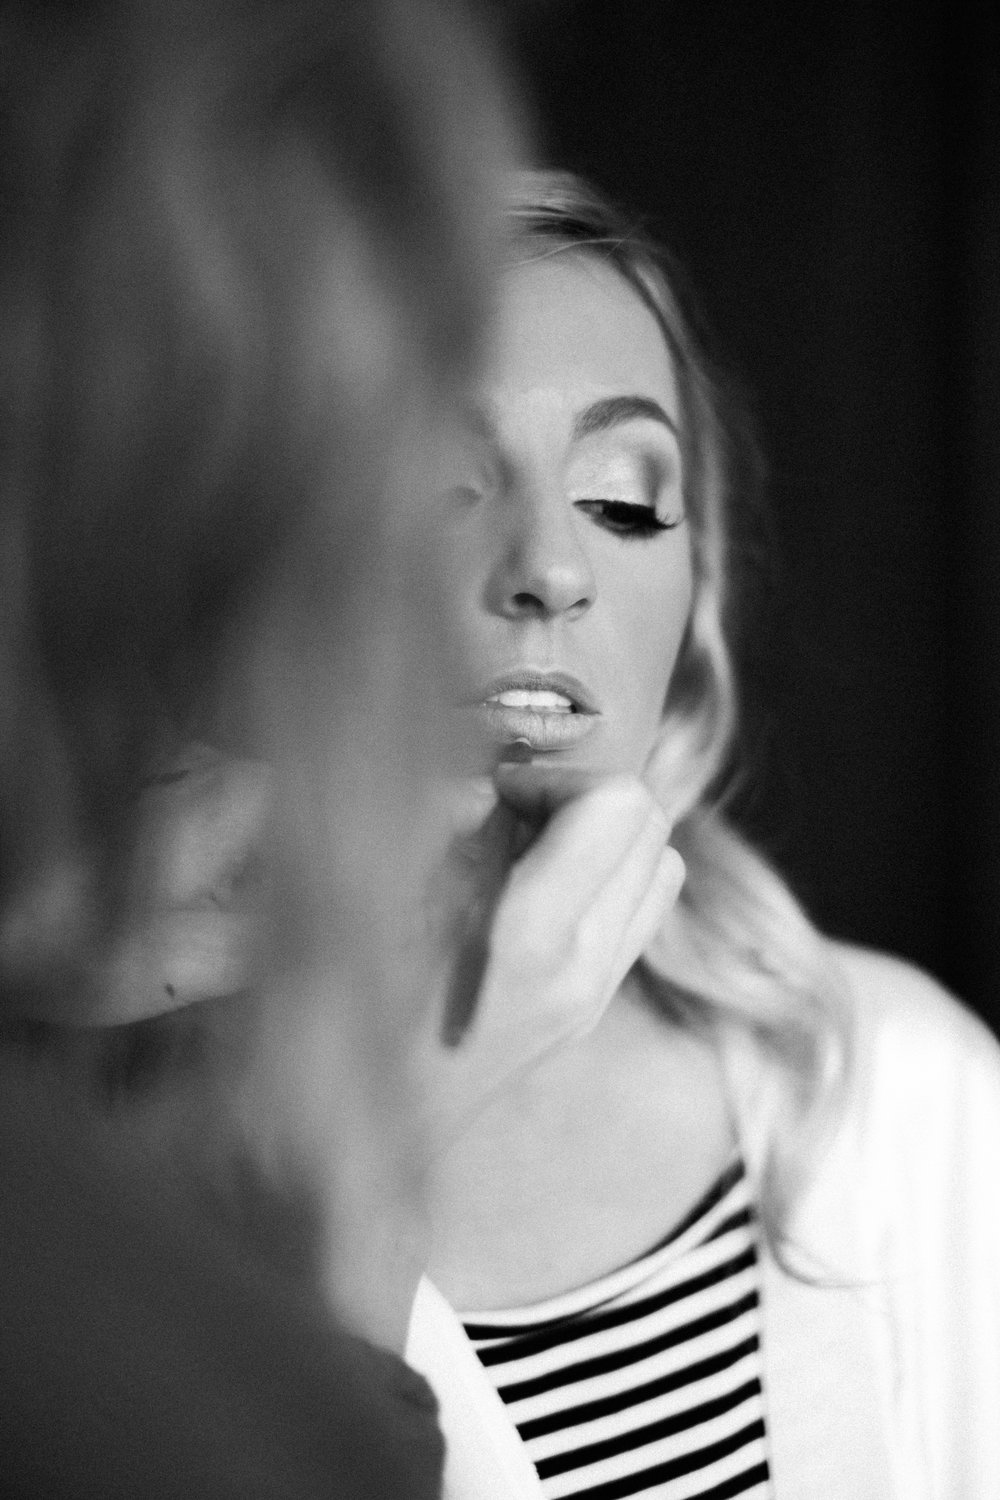 Geelong Wedding Photography | Bridal Prep